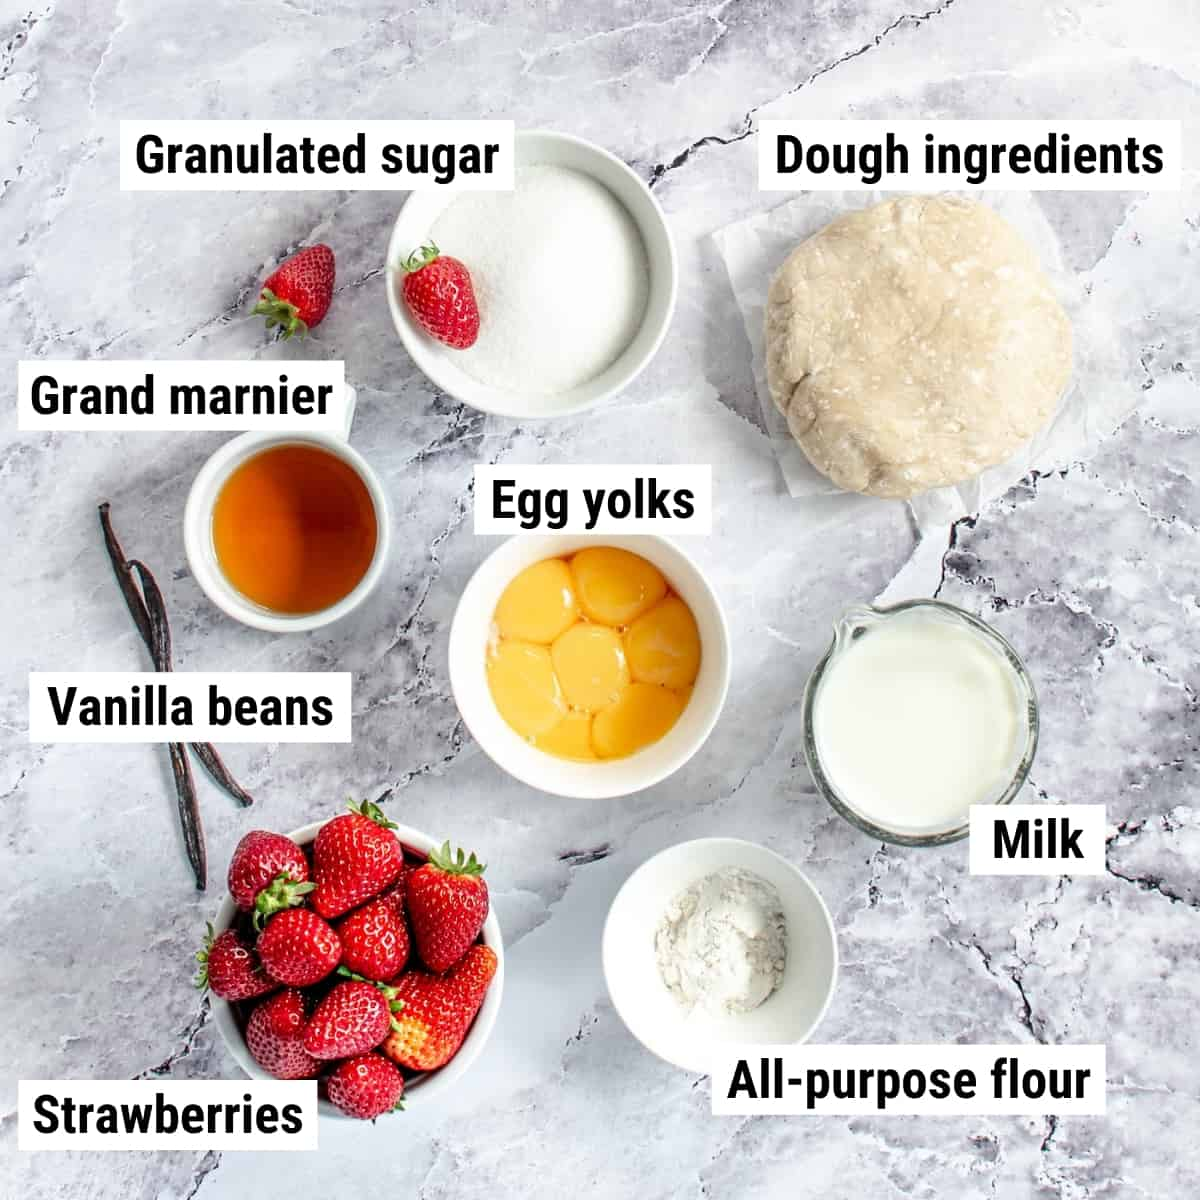 The ingredients used to make strawberry custard tart laid out on a table.